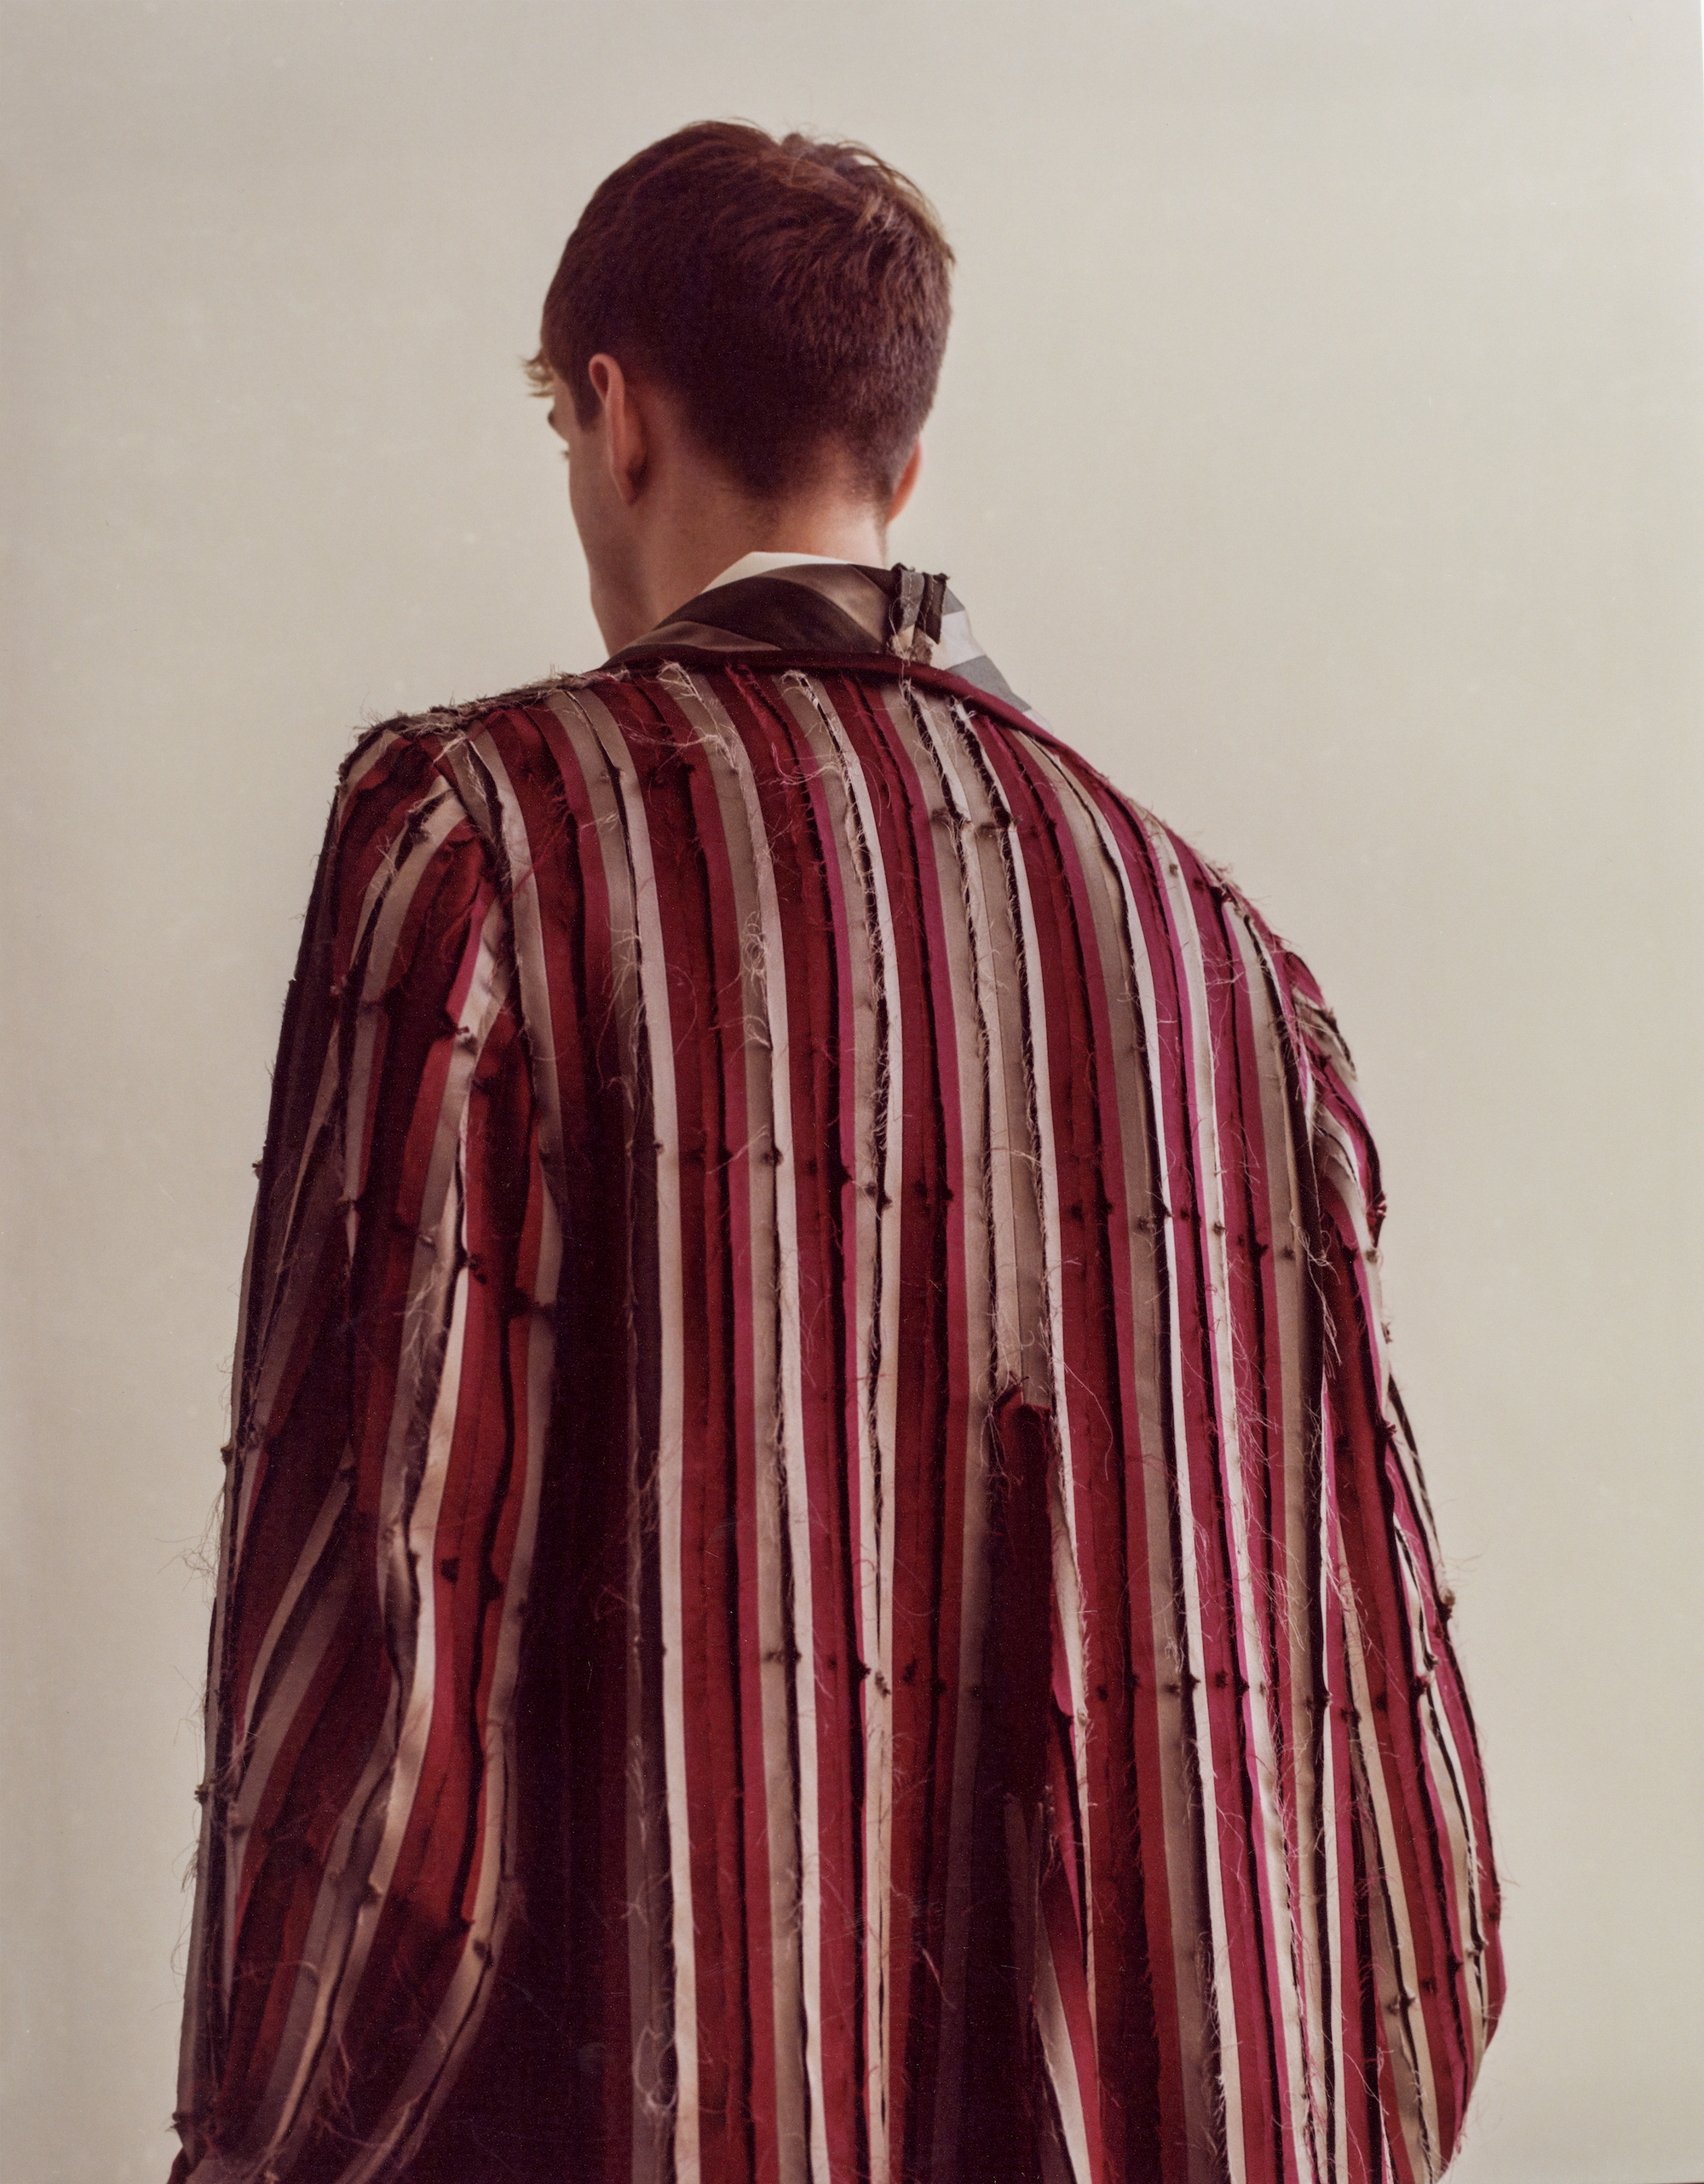 The 'Flyte' dressing gown is made up of 120 panels in three different silk qualities creating a striped appearance.